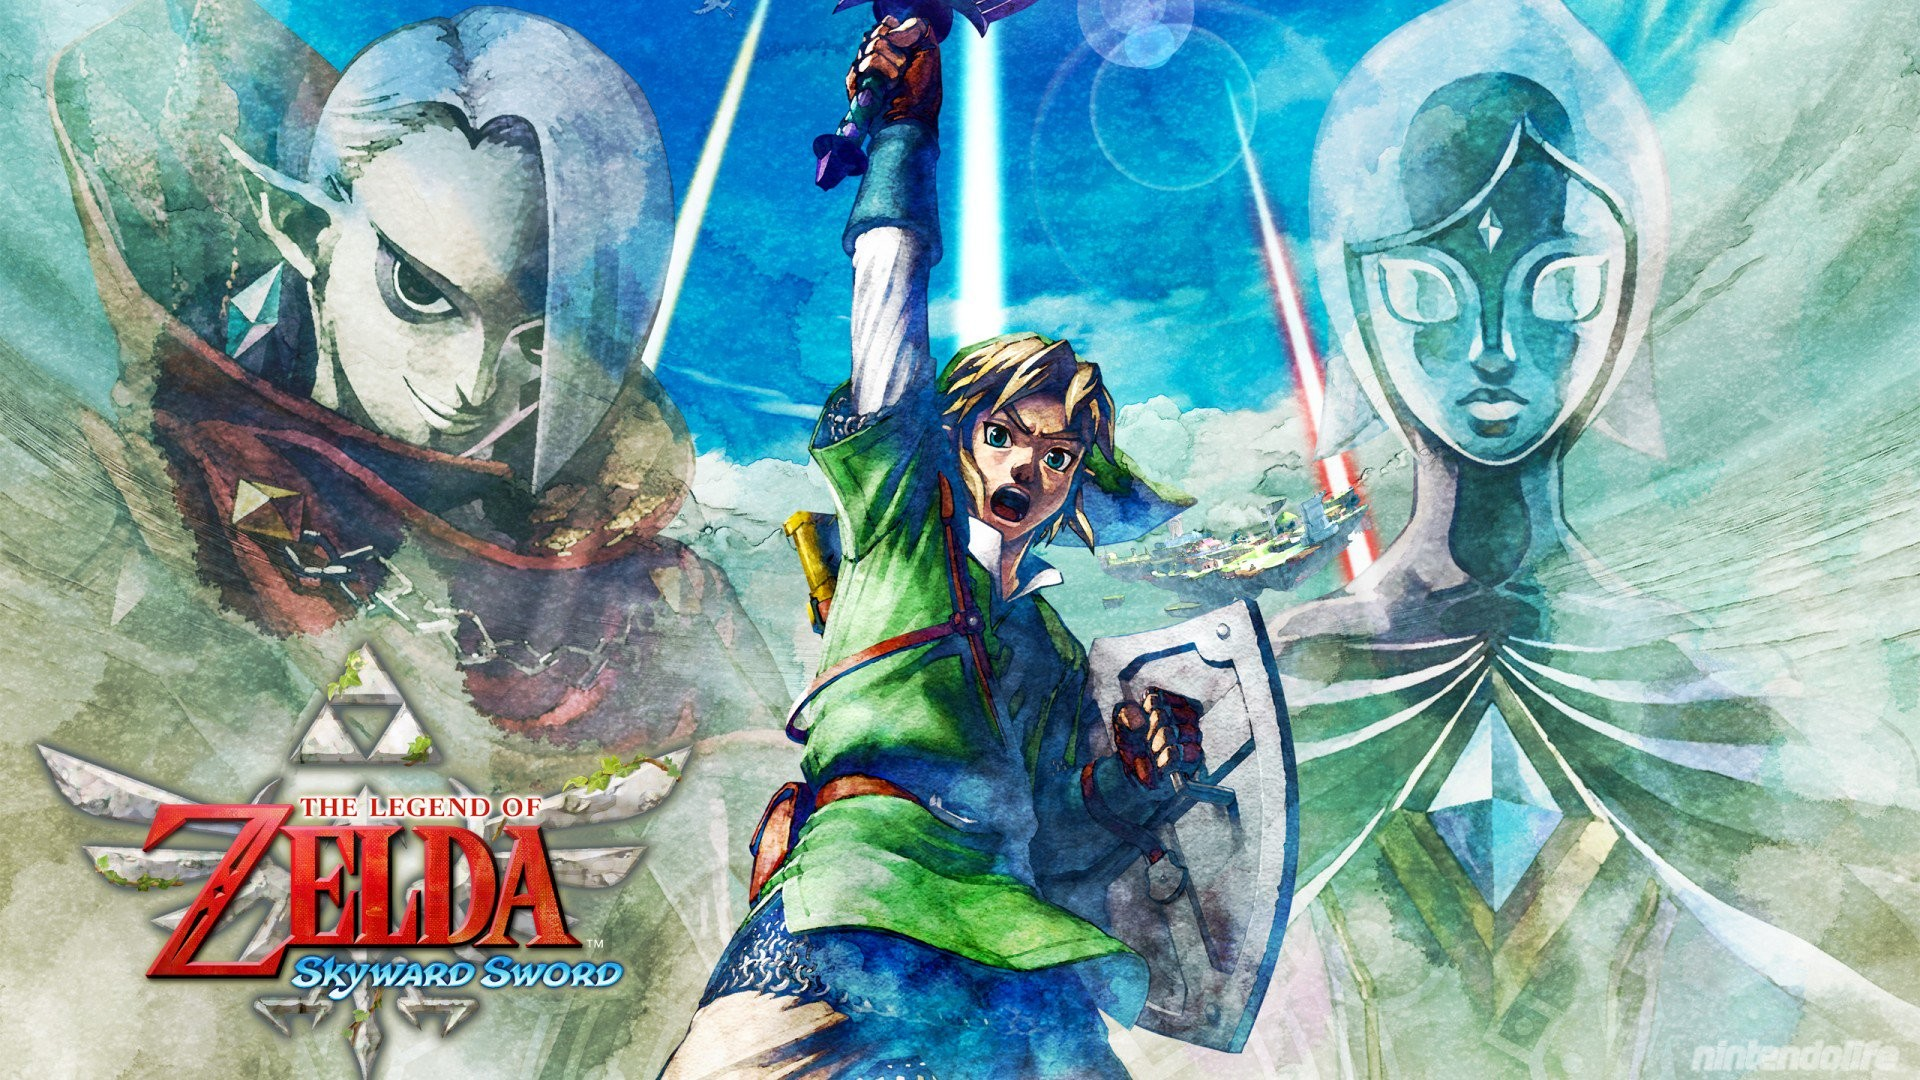 Legend Of Zelda Skyward Sword Wallpaper Wallpapertag